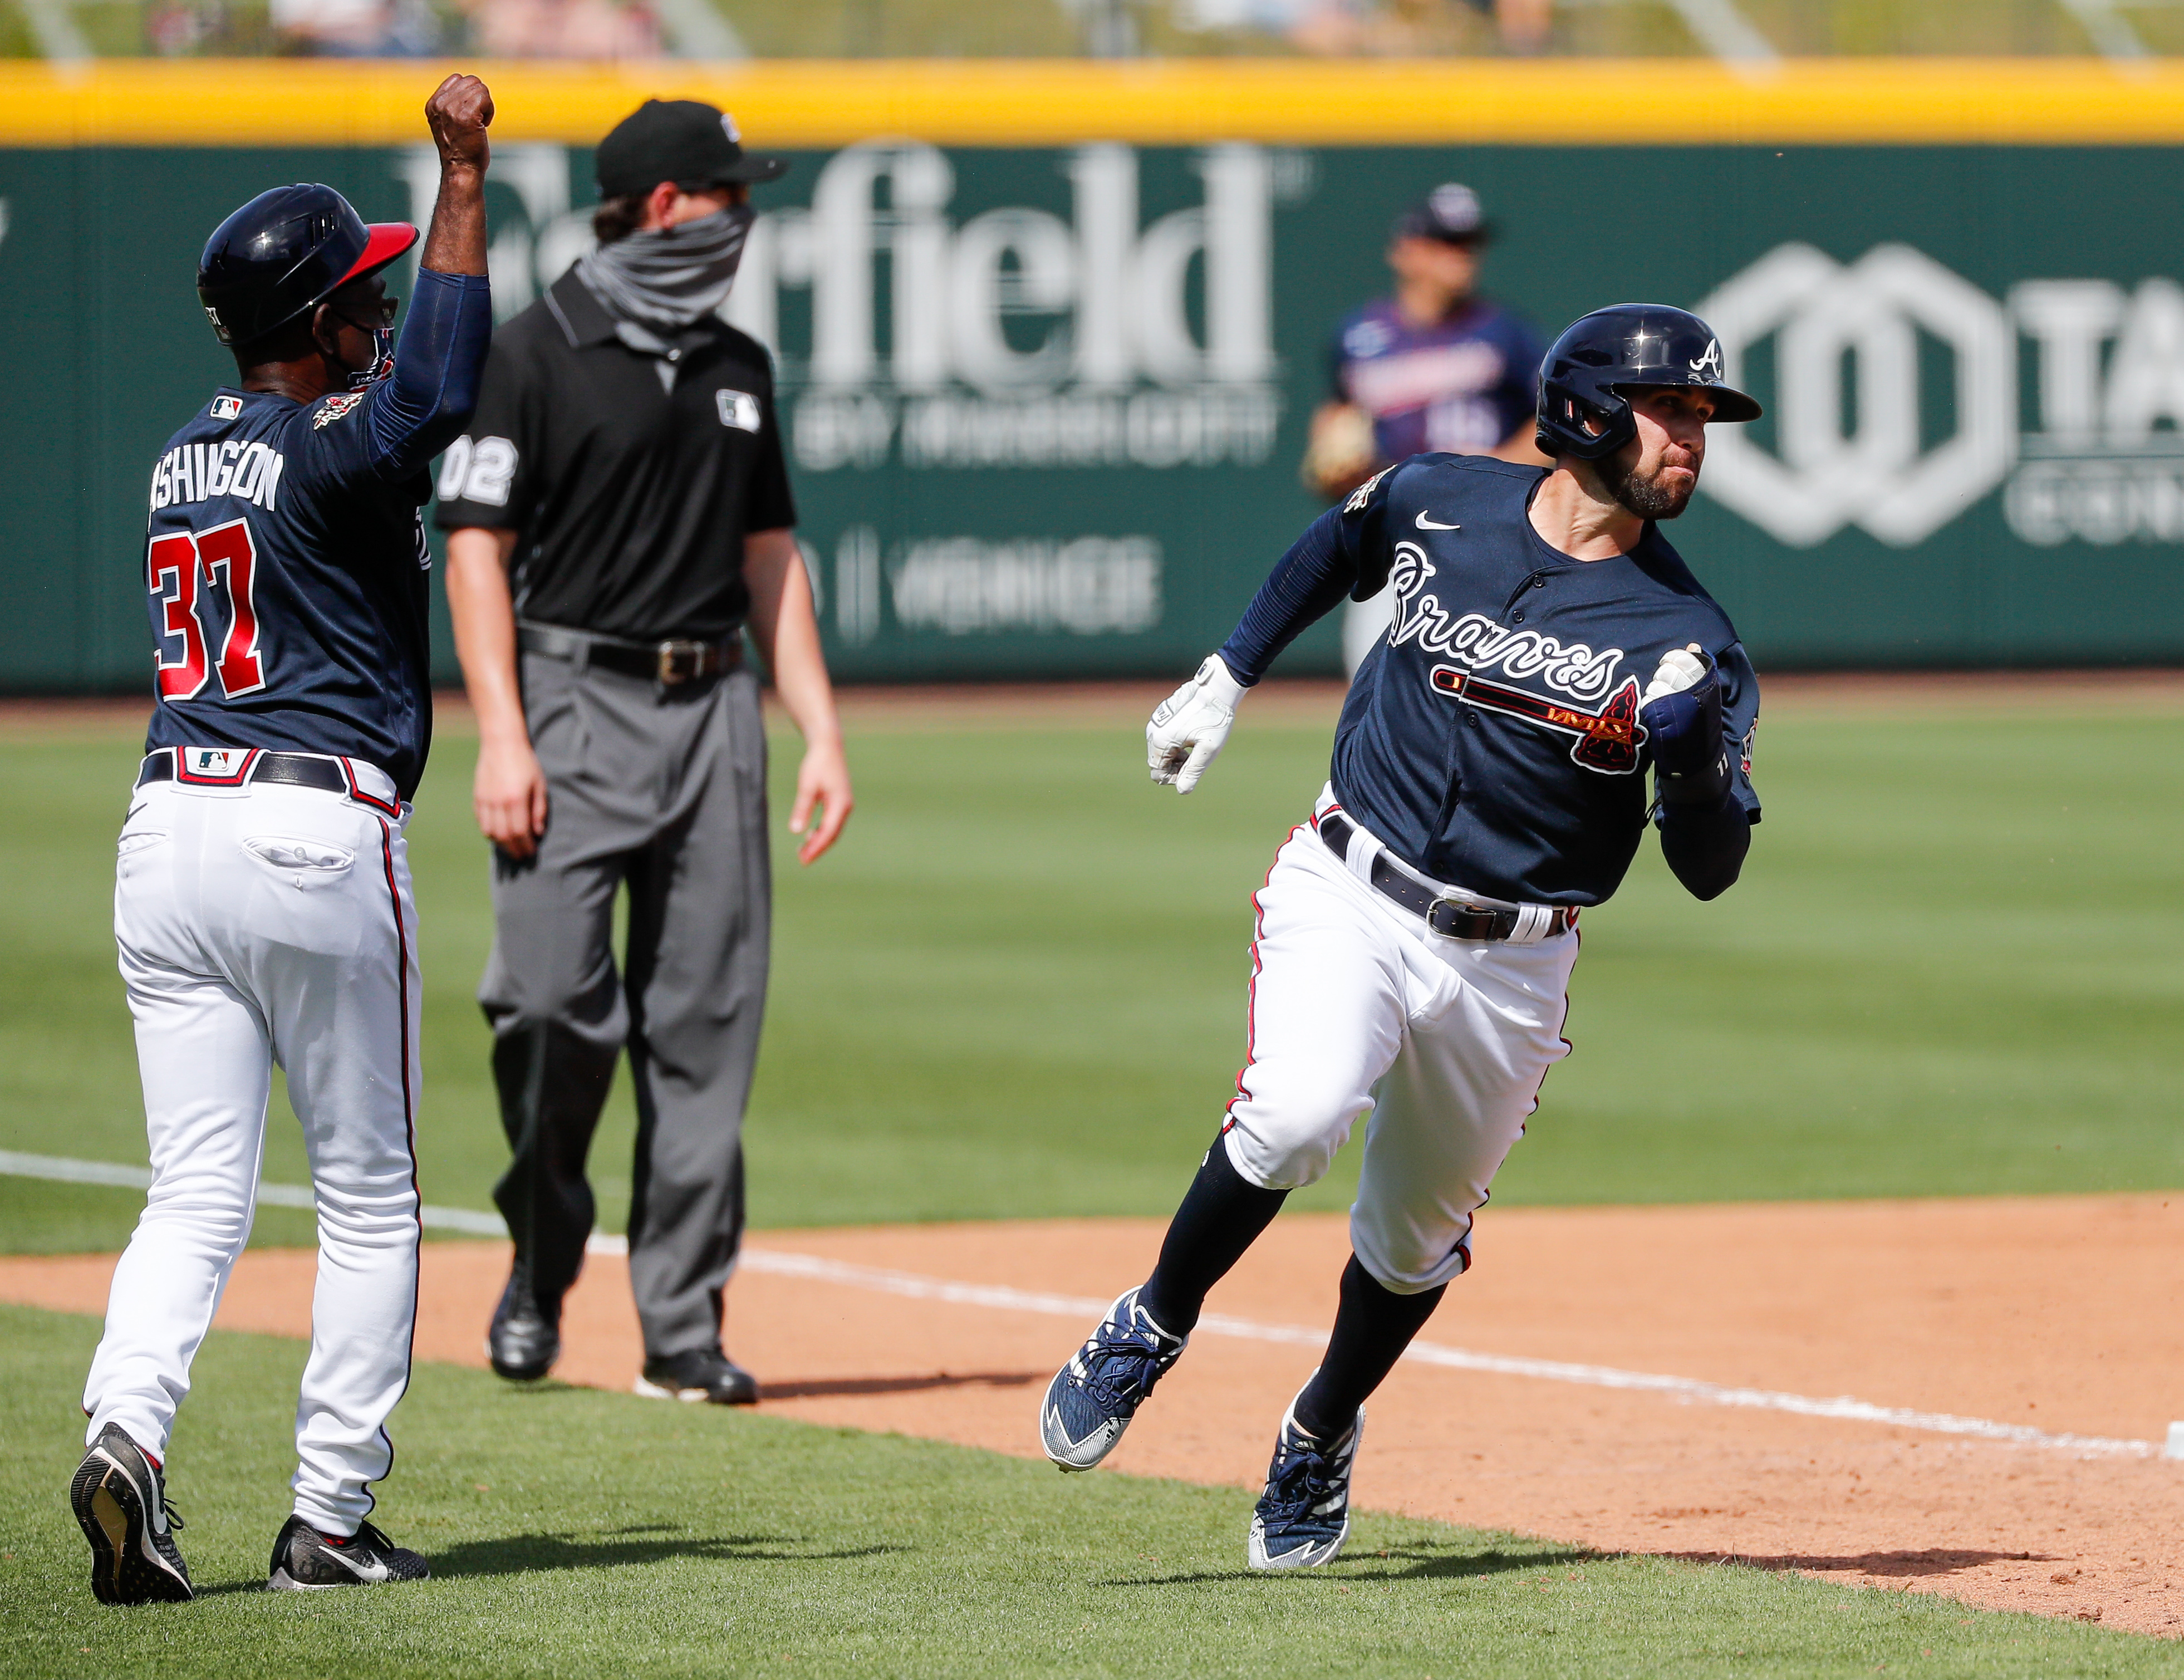 MLB: Minnesota Twins at Atlanta Braves